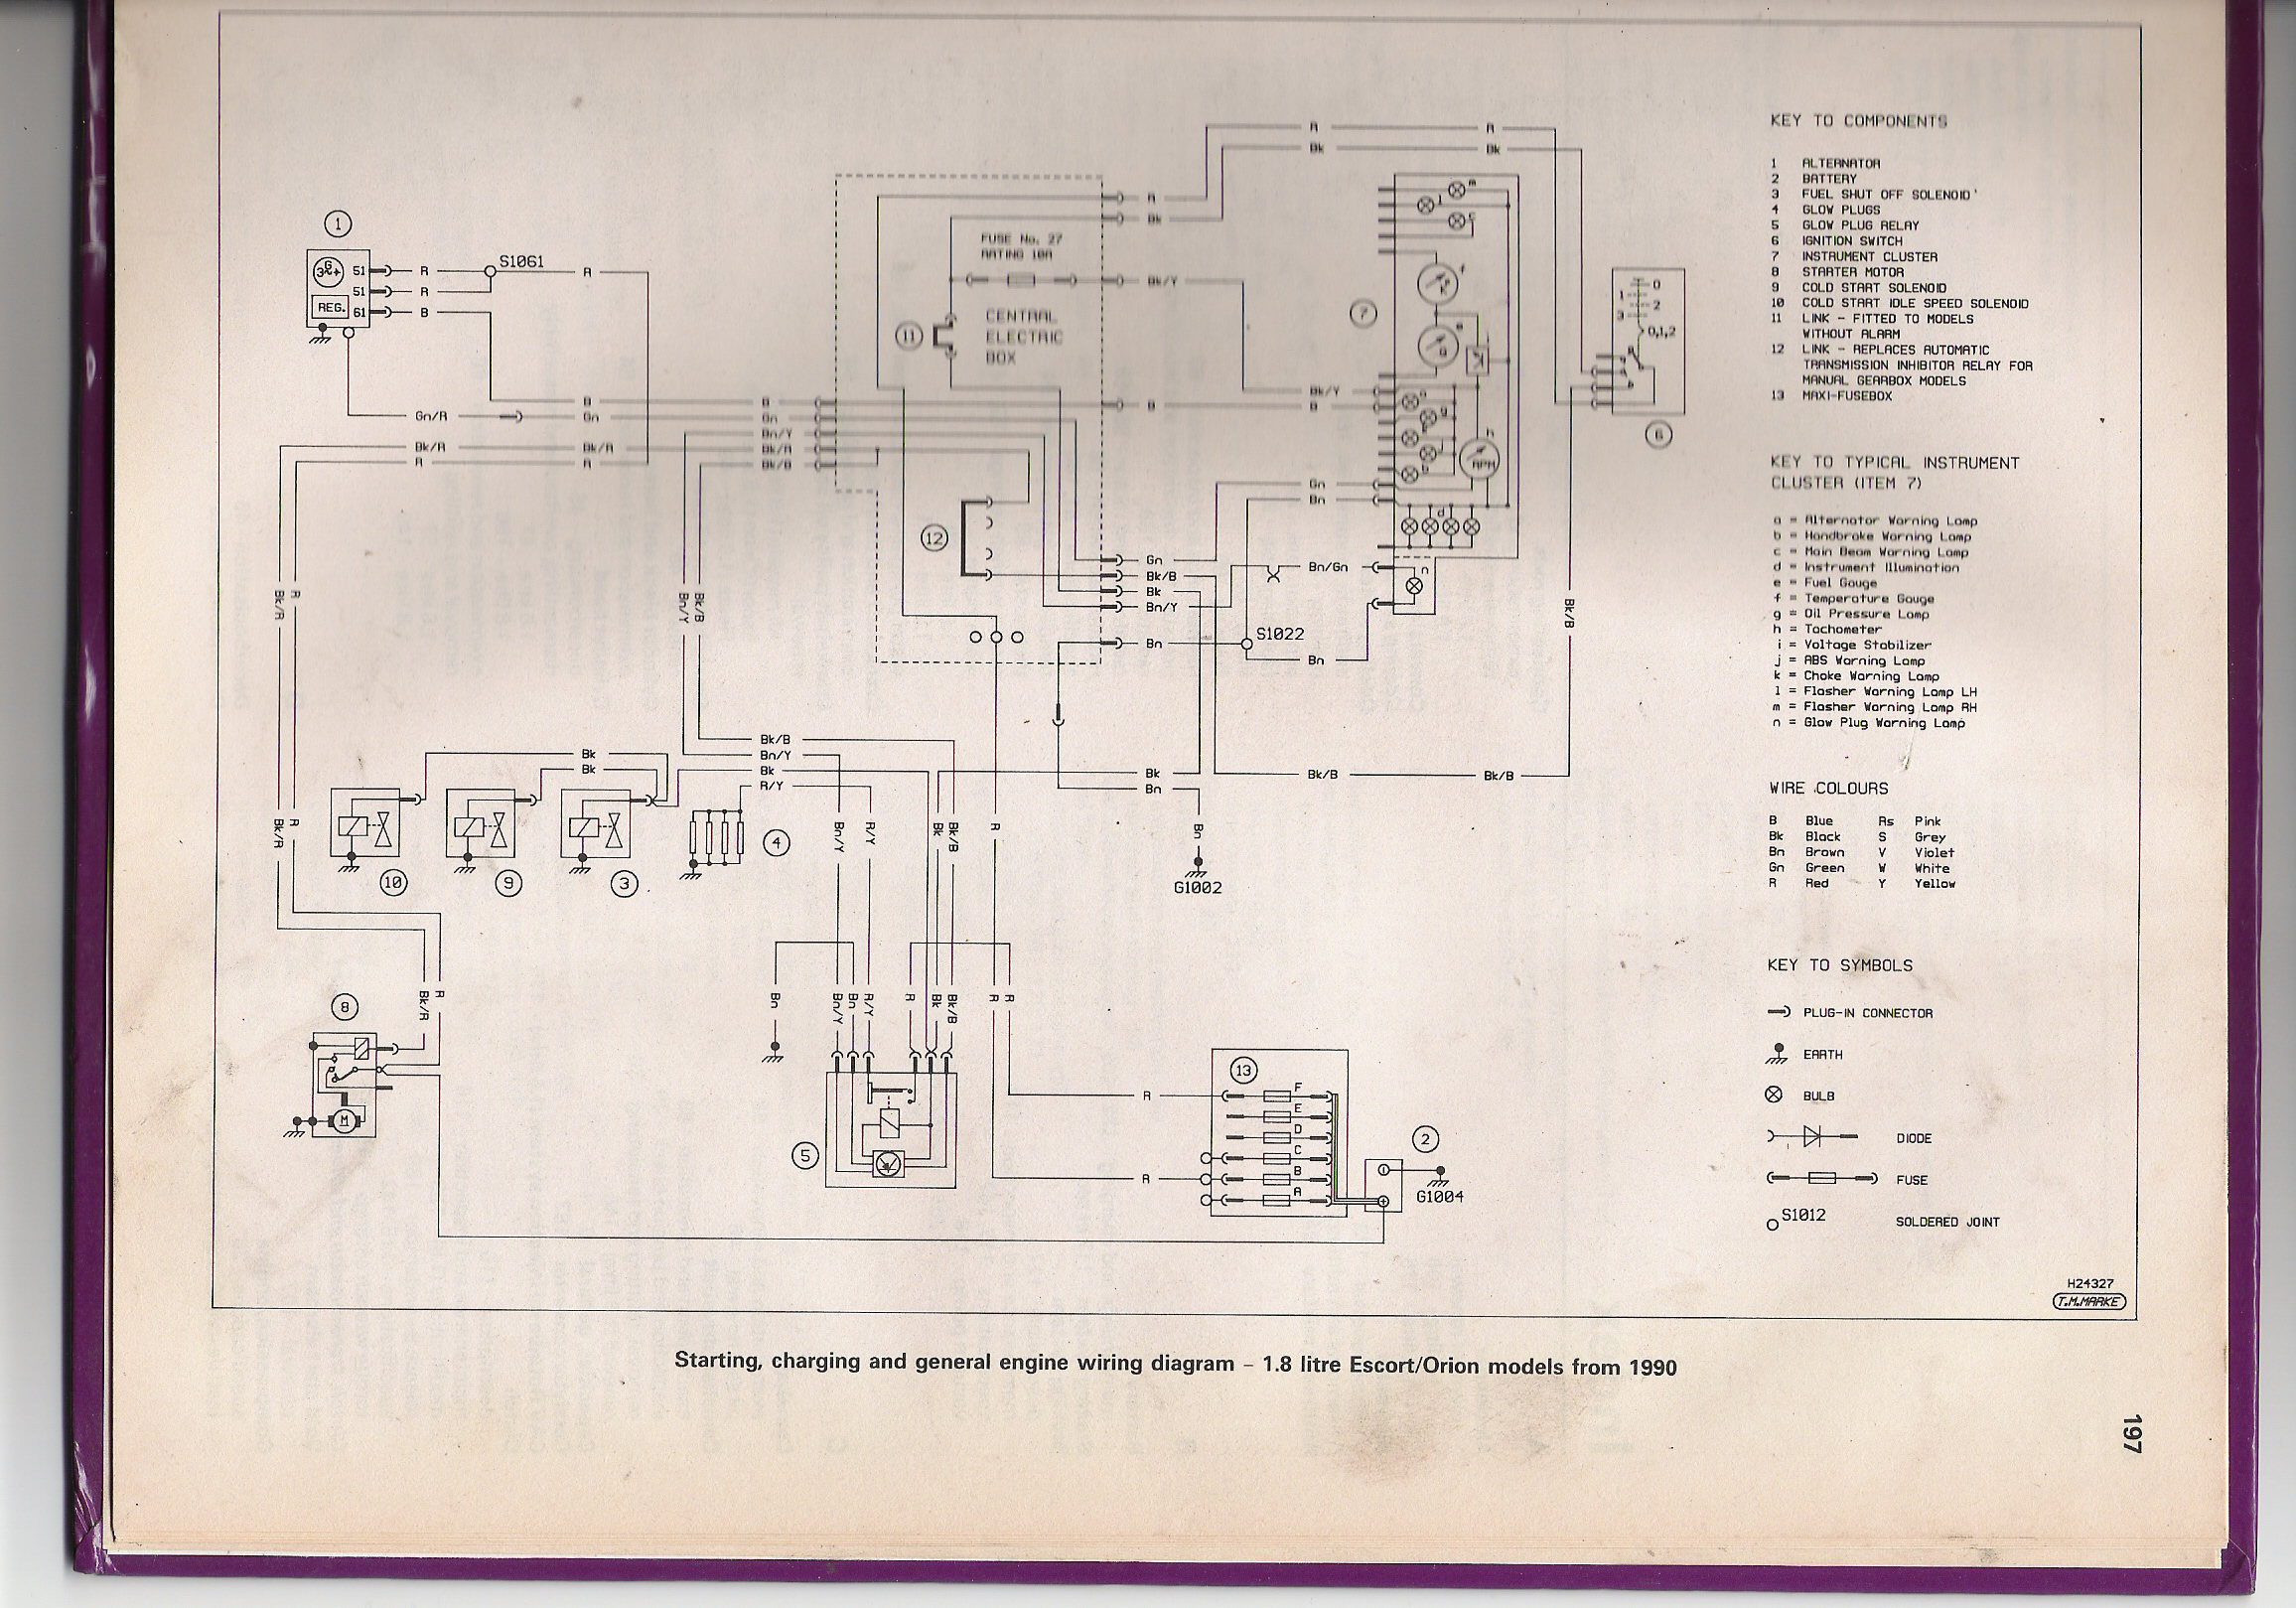 fordwiringdl mk4 wiring diagram wiring diagram for mk4 jetta power seats escort mk1 wiring diagram at arjmand.co